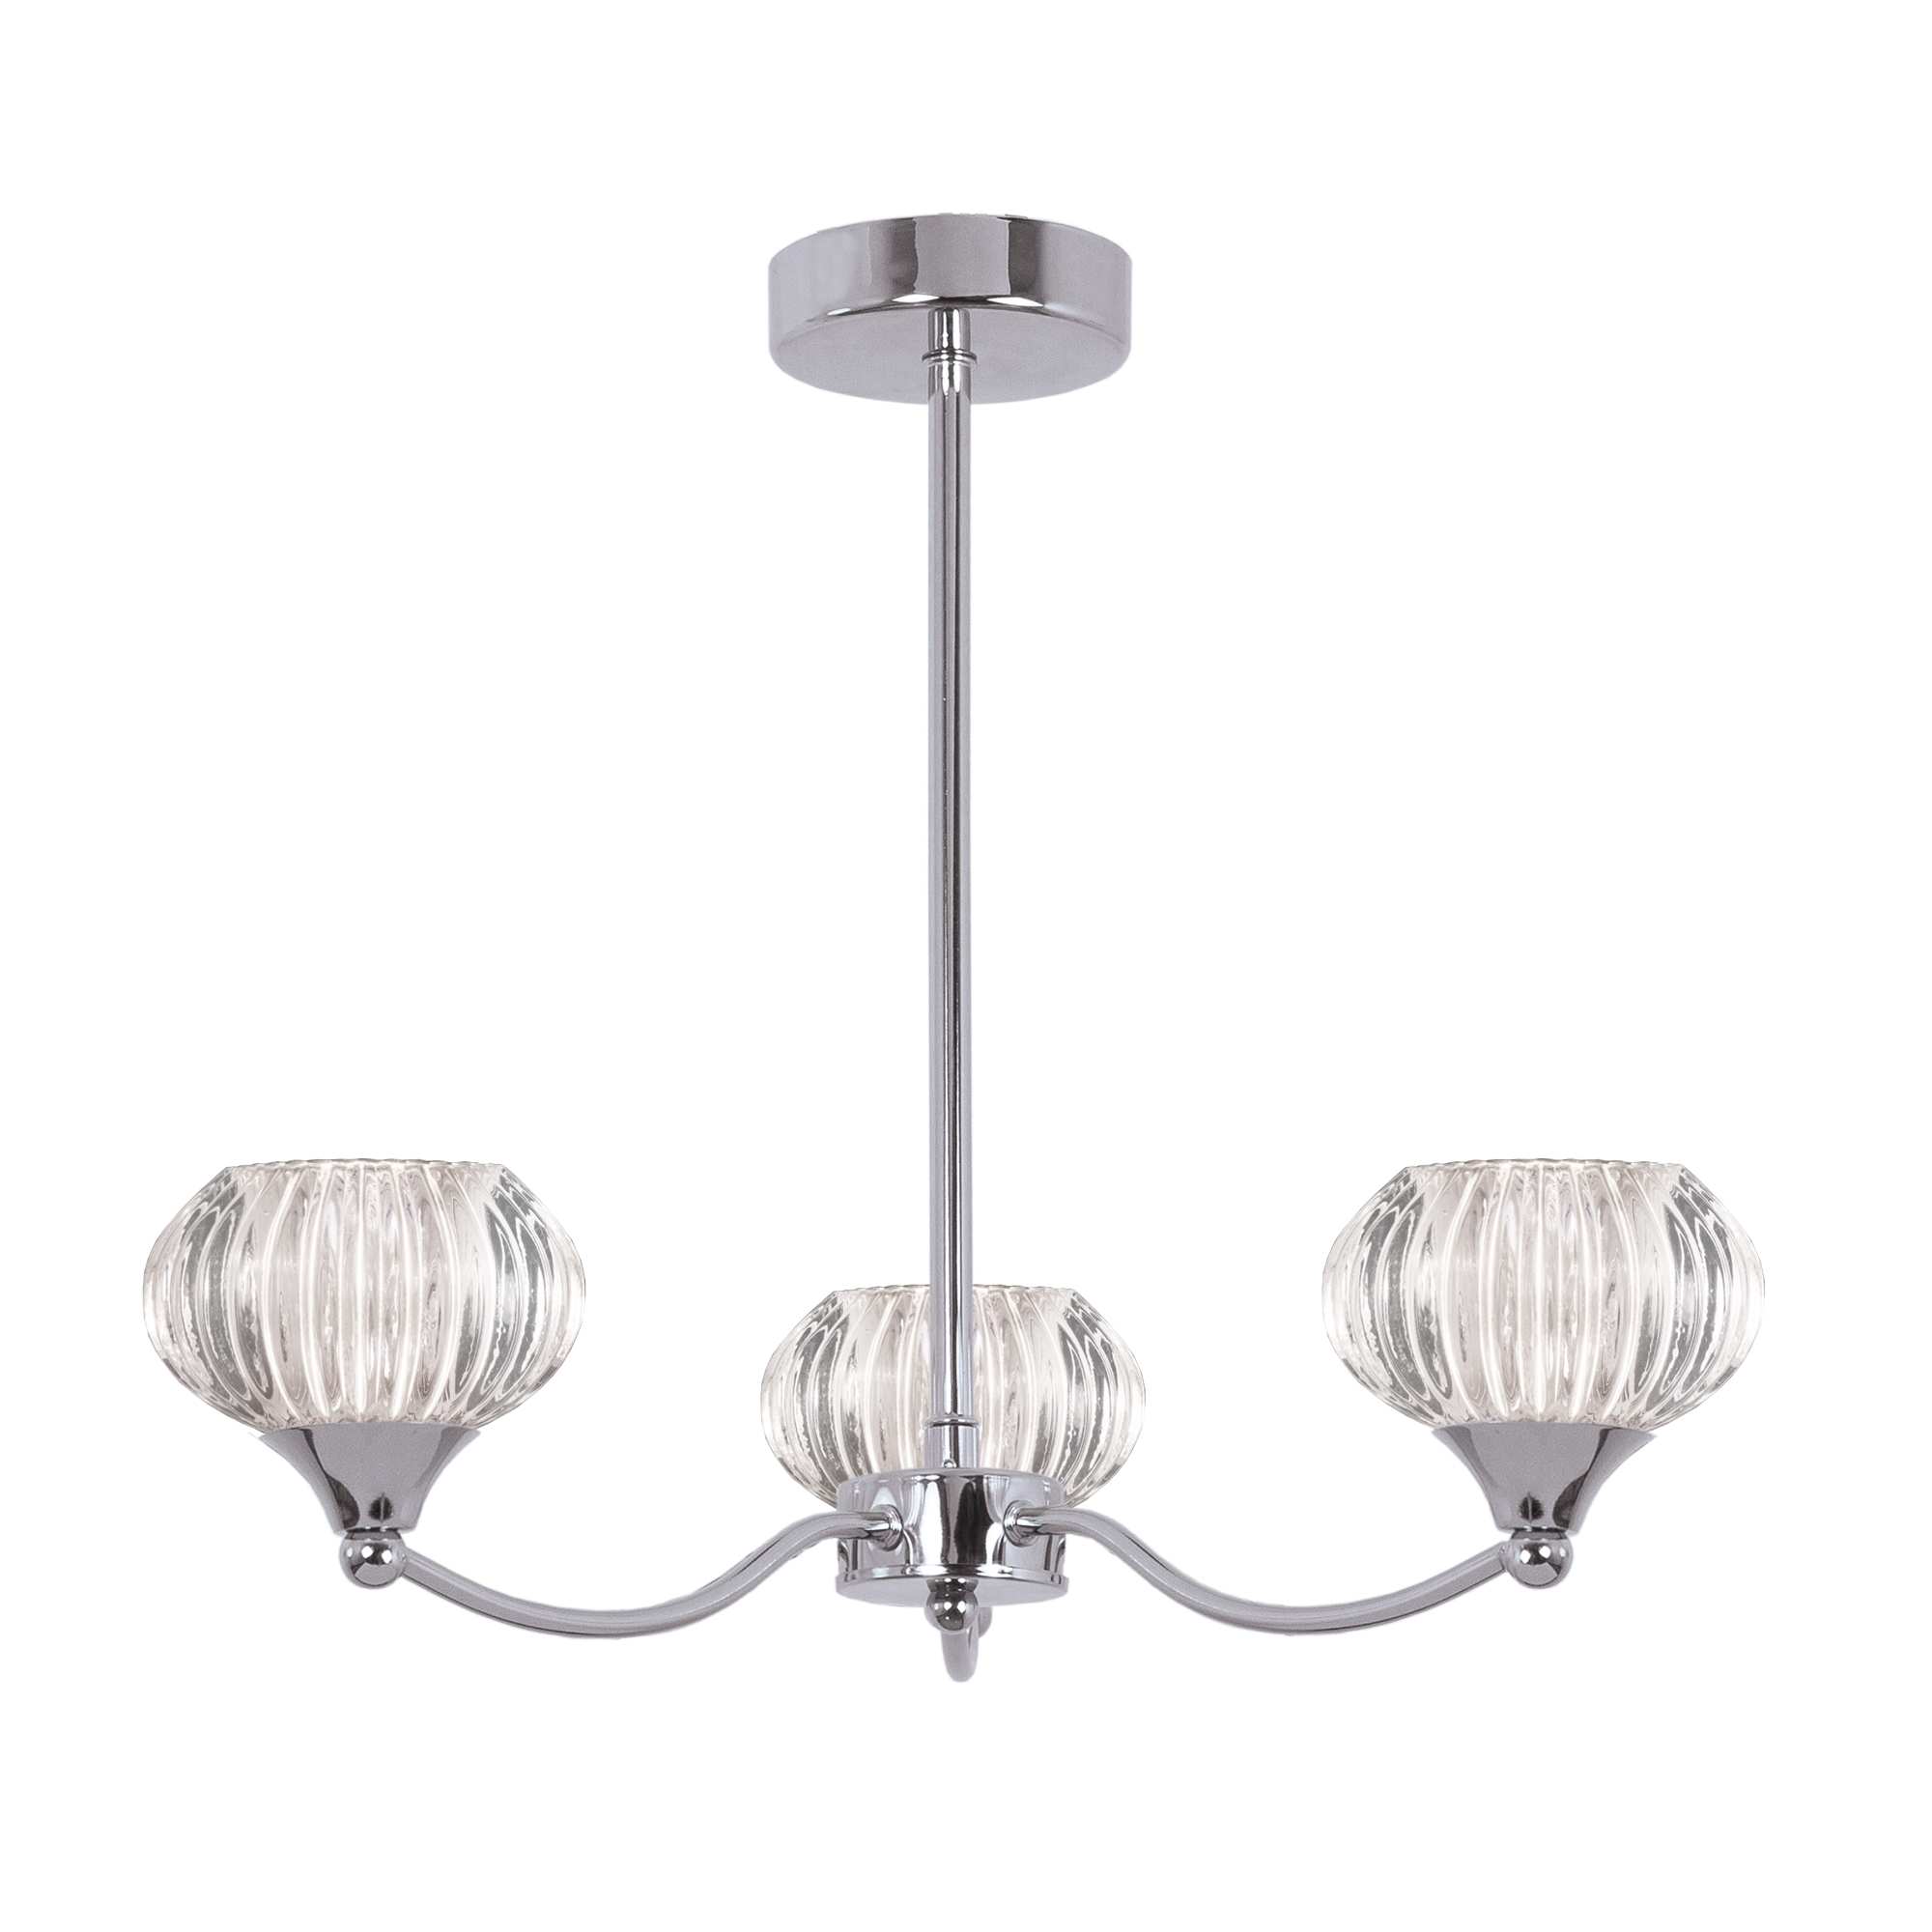 Chrome 3 Light Ceiling Pendant Light With Ribbed Glass